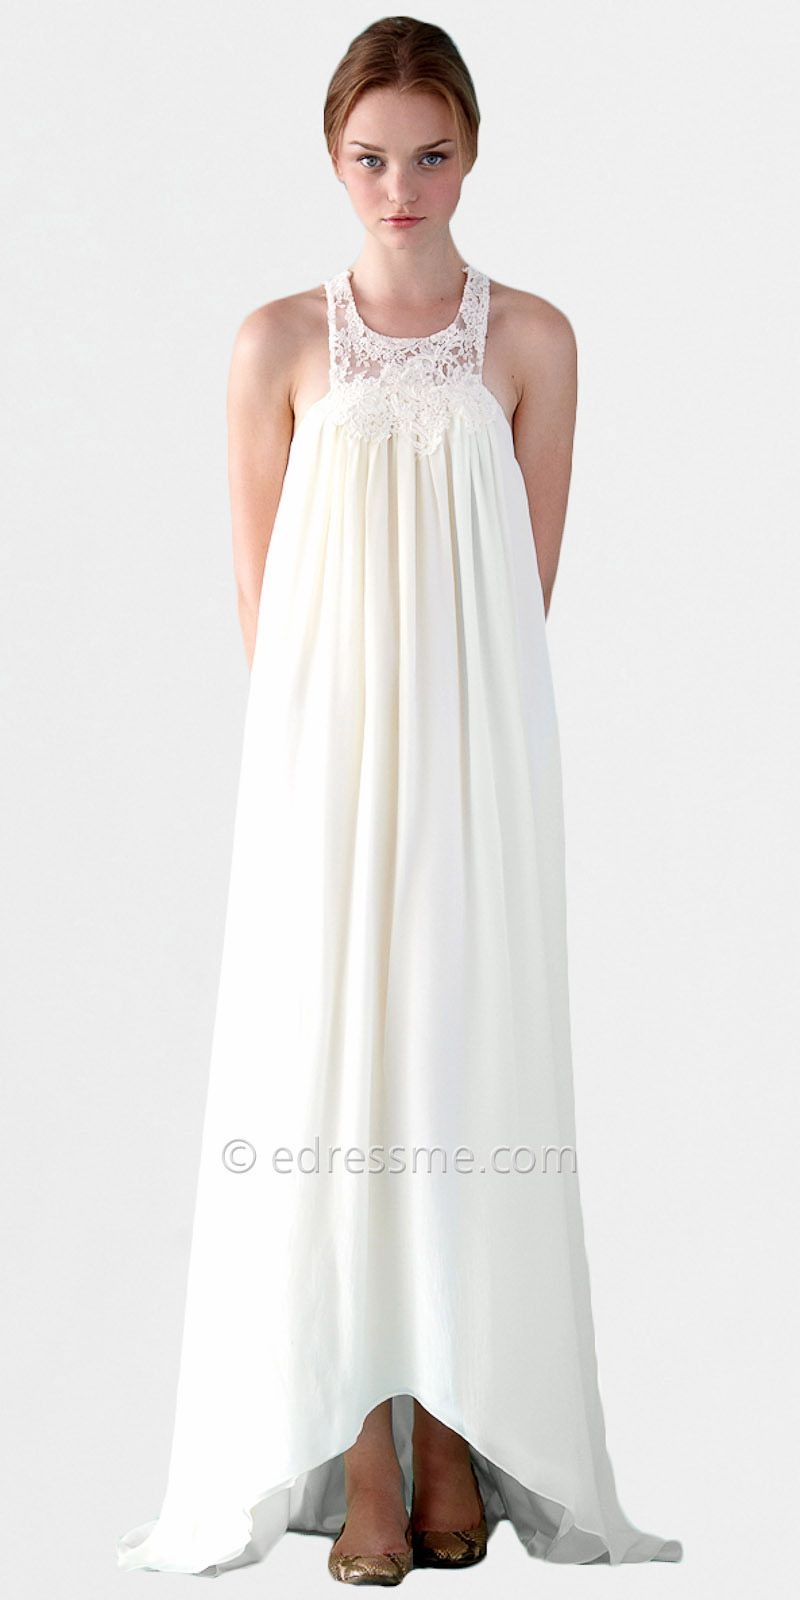 Wedding dresses for thin figures maybe with a skinny white or silverbelt to make it more figure